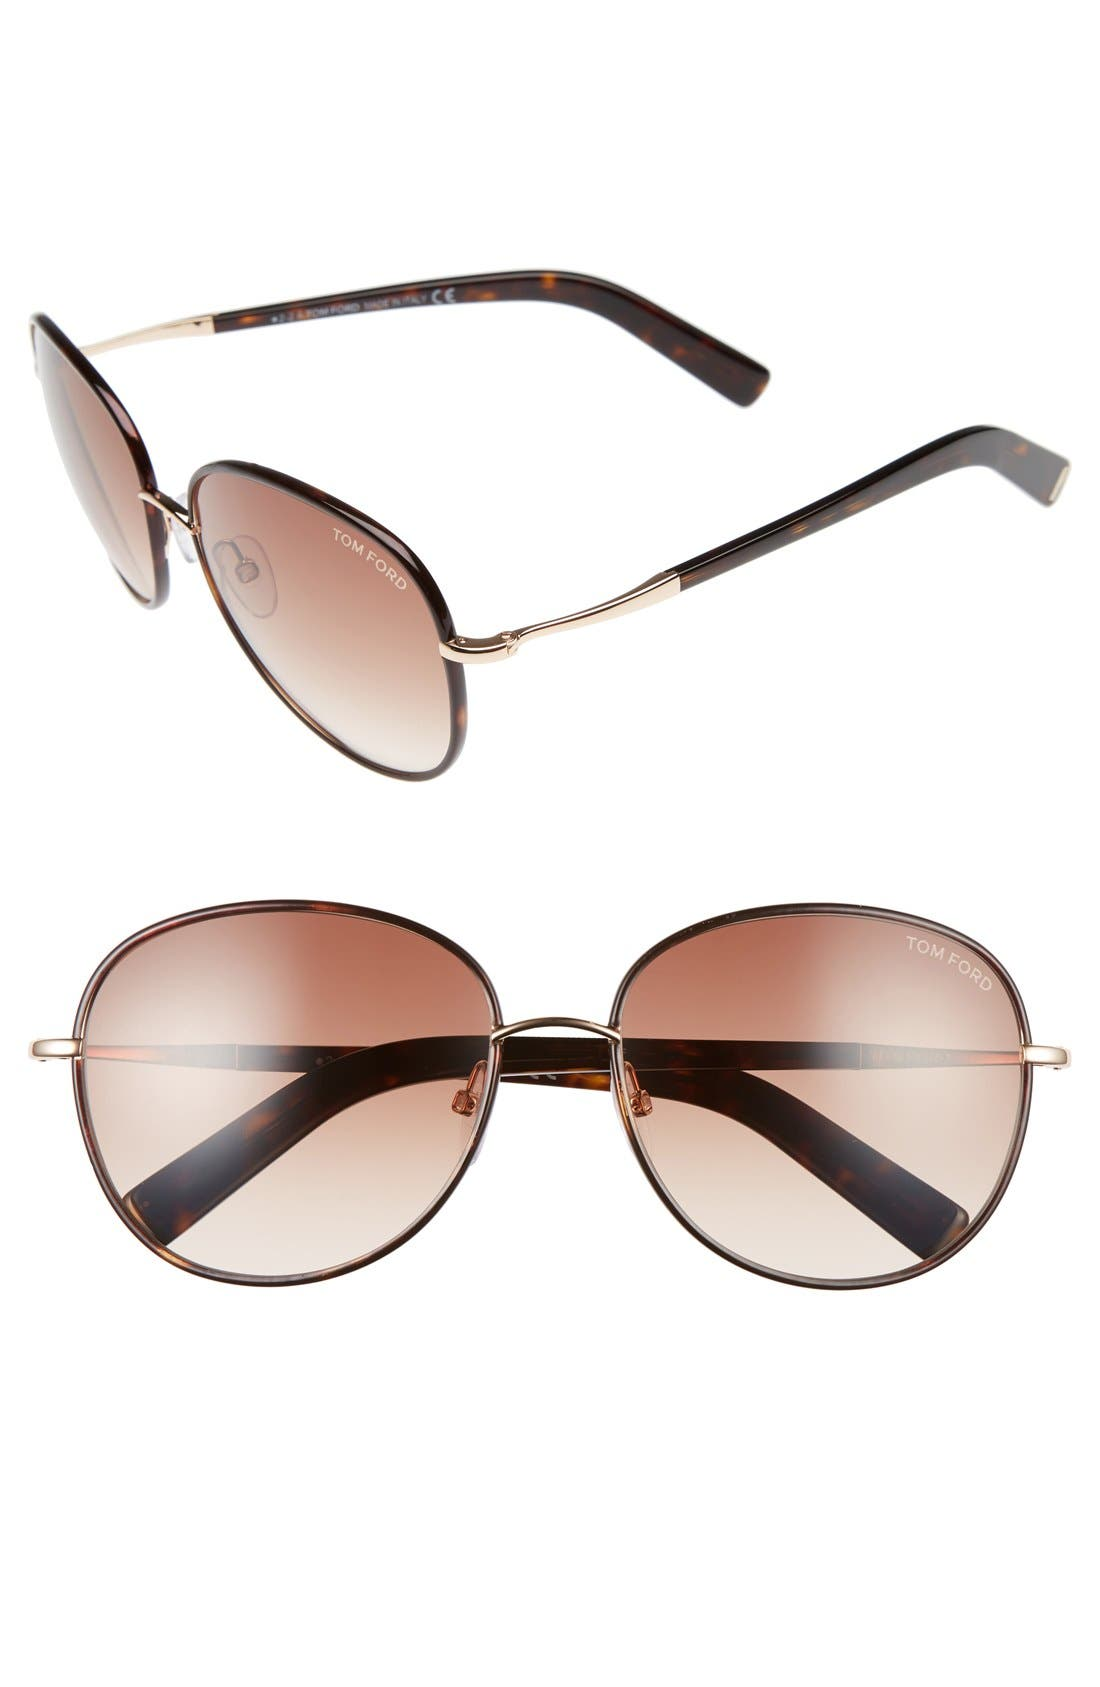 Georgia 59mm Sunglasses,                         Main,                         color, Rose Gold/ Havana/ Brown